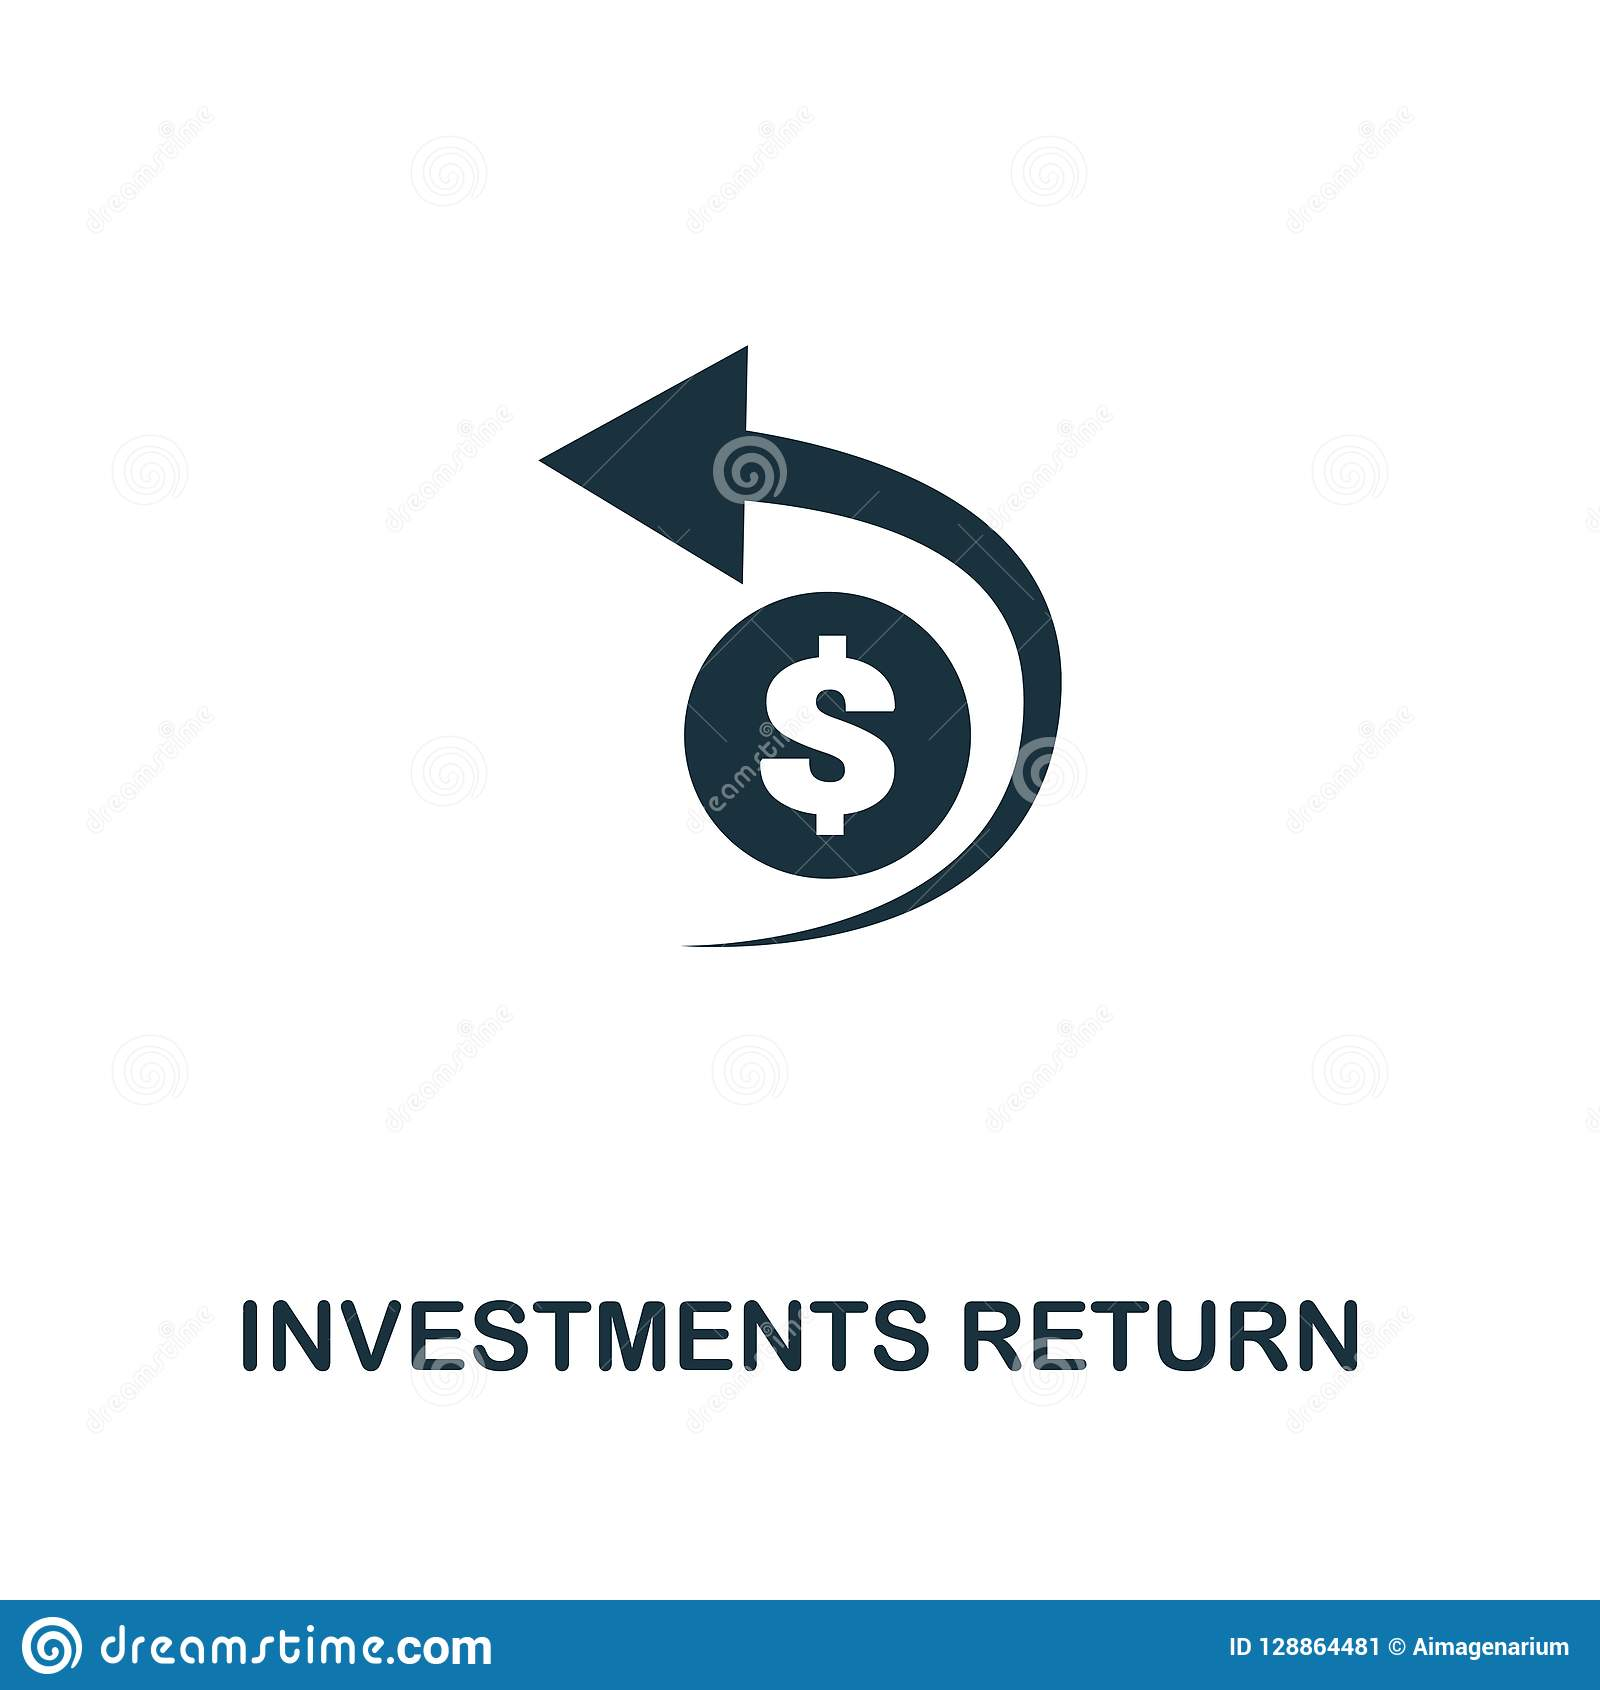 Investments Return Icon Premium Style Design From Crowdfunding Icon Collection Ui And Ux Pixel Perfect Investments Return Icon Stock Illustration Illustration Of Profit Business 128864481